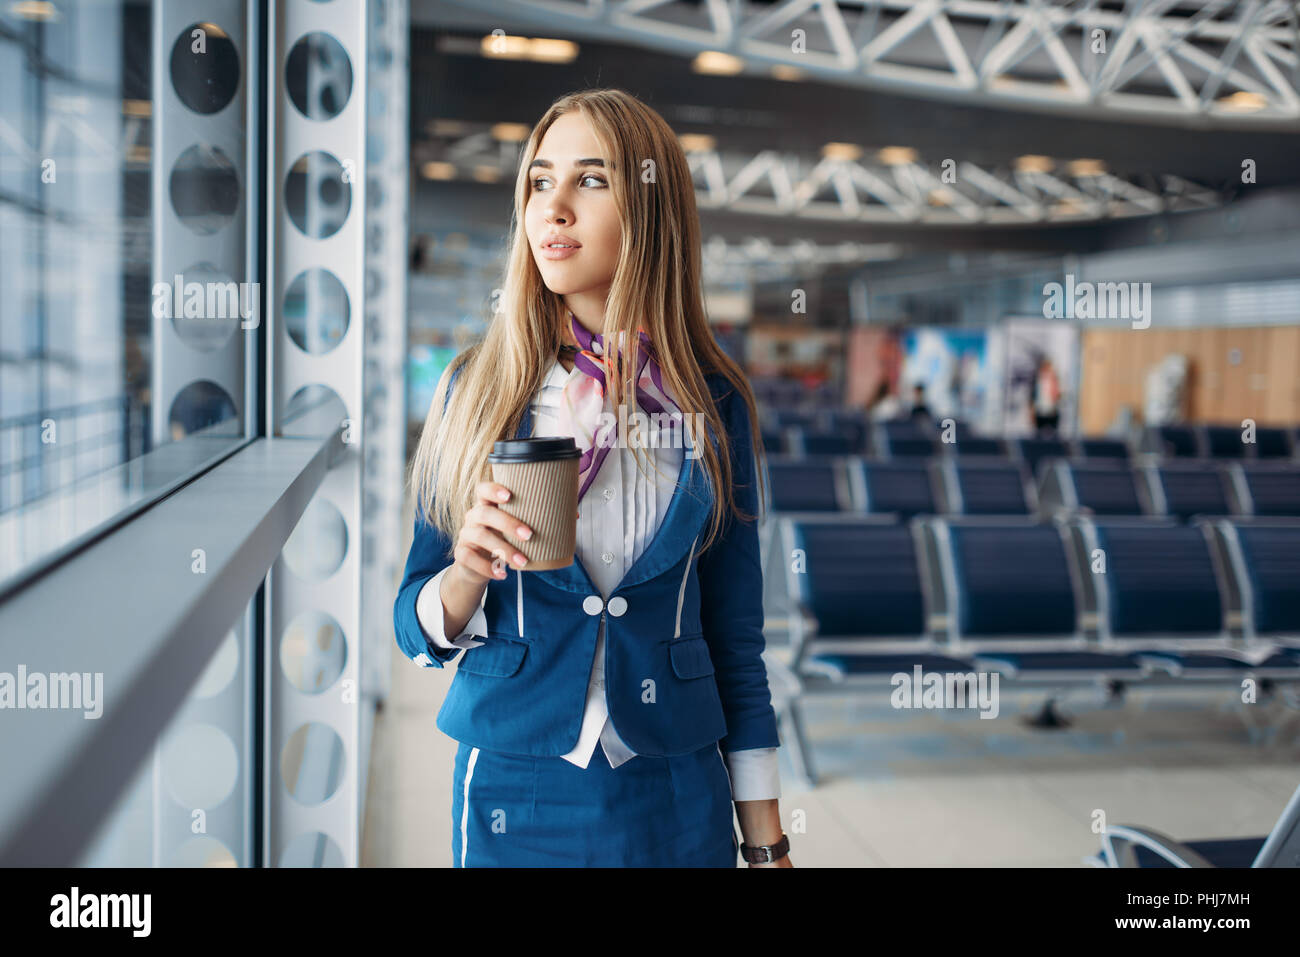 Stewardess with suitcase and coffee against window in airport. Air hostess with baggage in waiting room, flight attendant with hand luggage, aviatrans - Stock Image